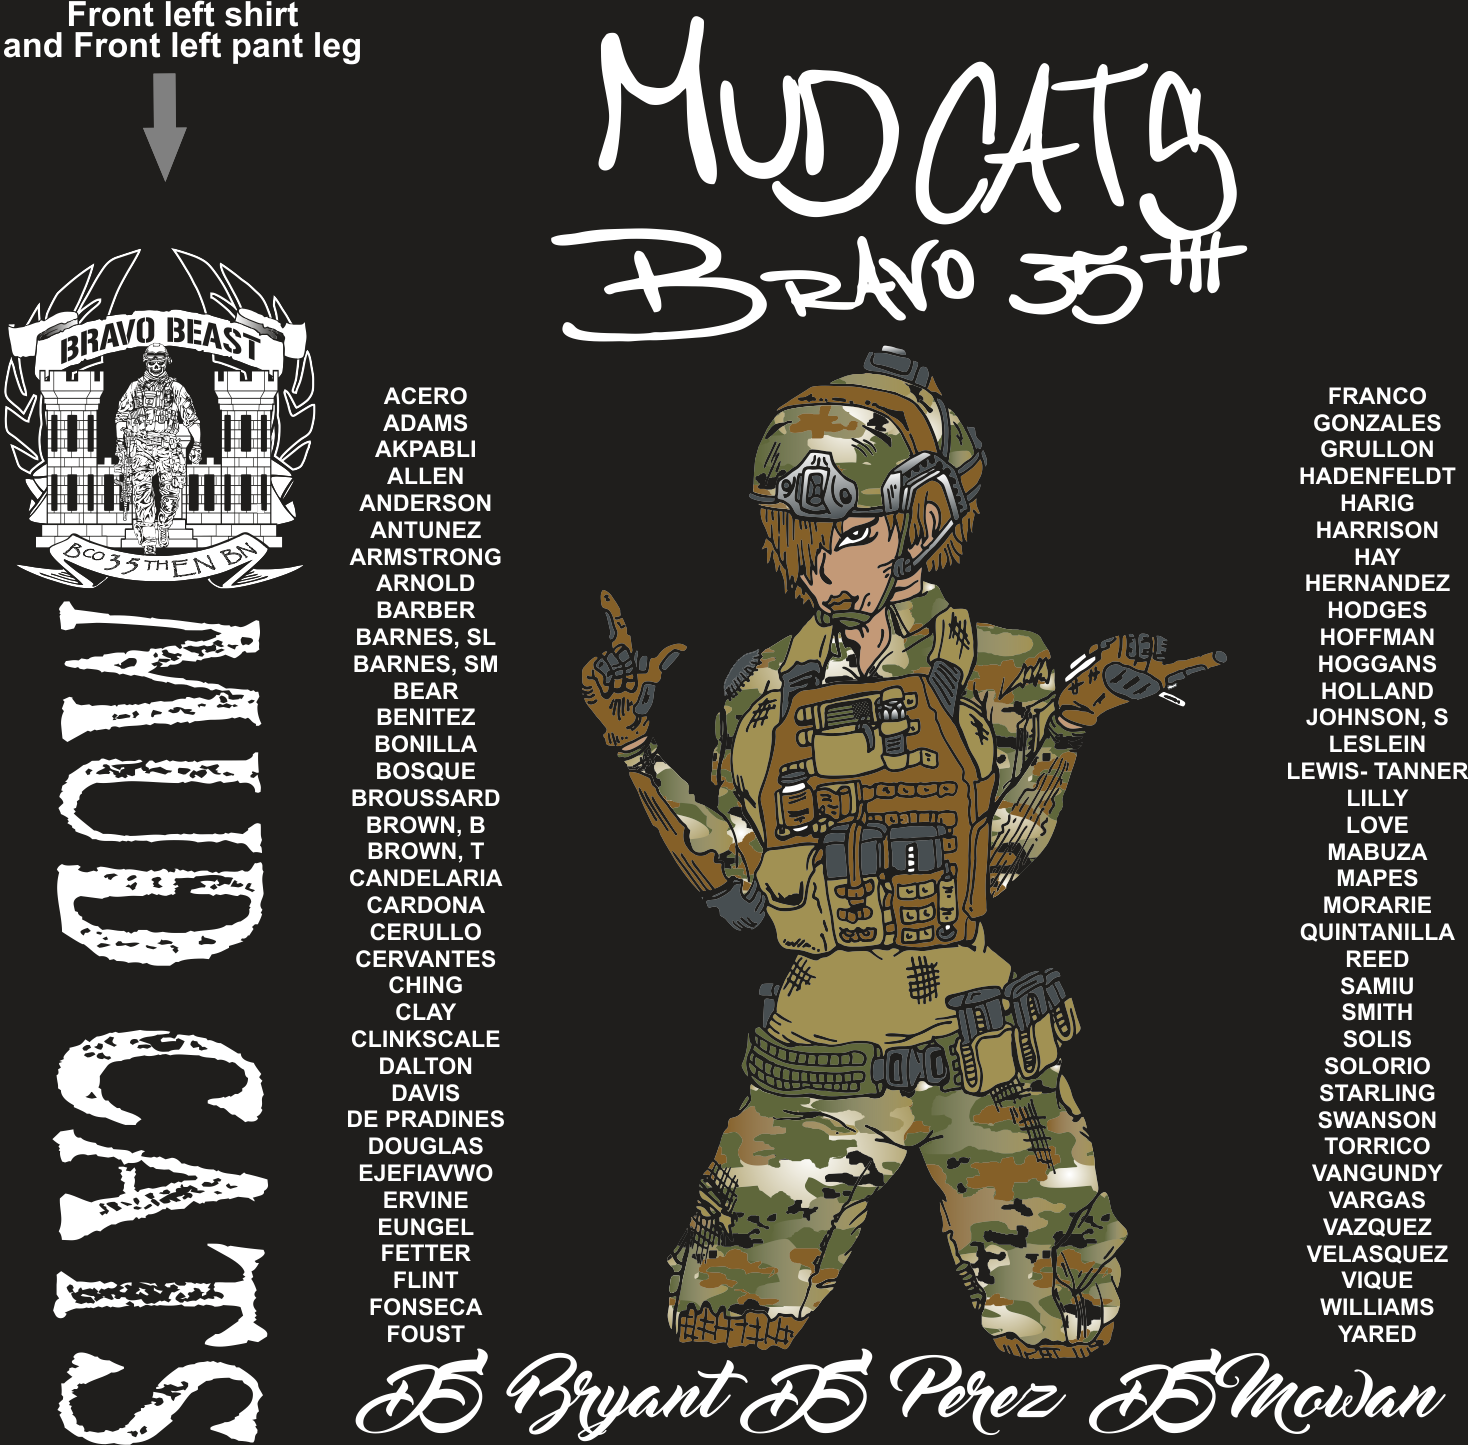 BRAVO 35TH MUDCATS GRADUATING DAY 6-23-2017 digital